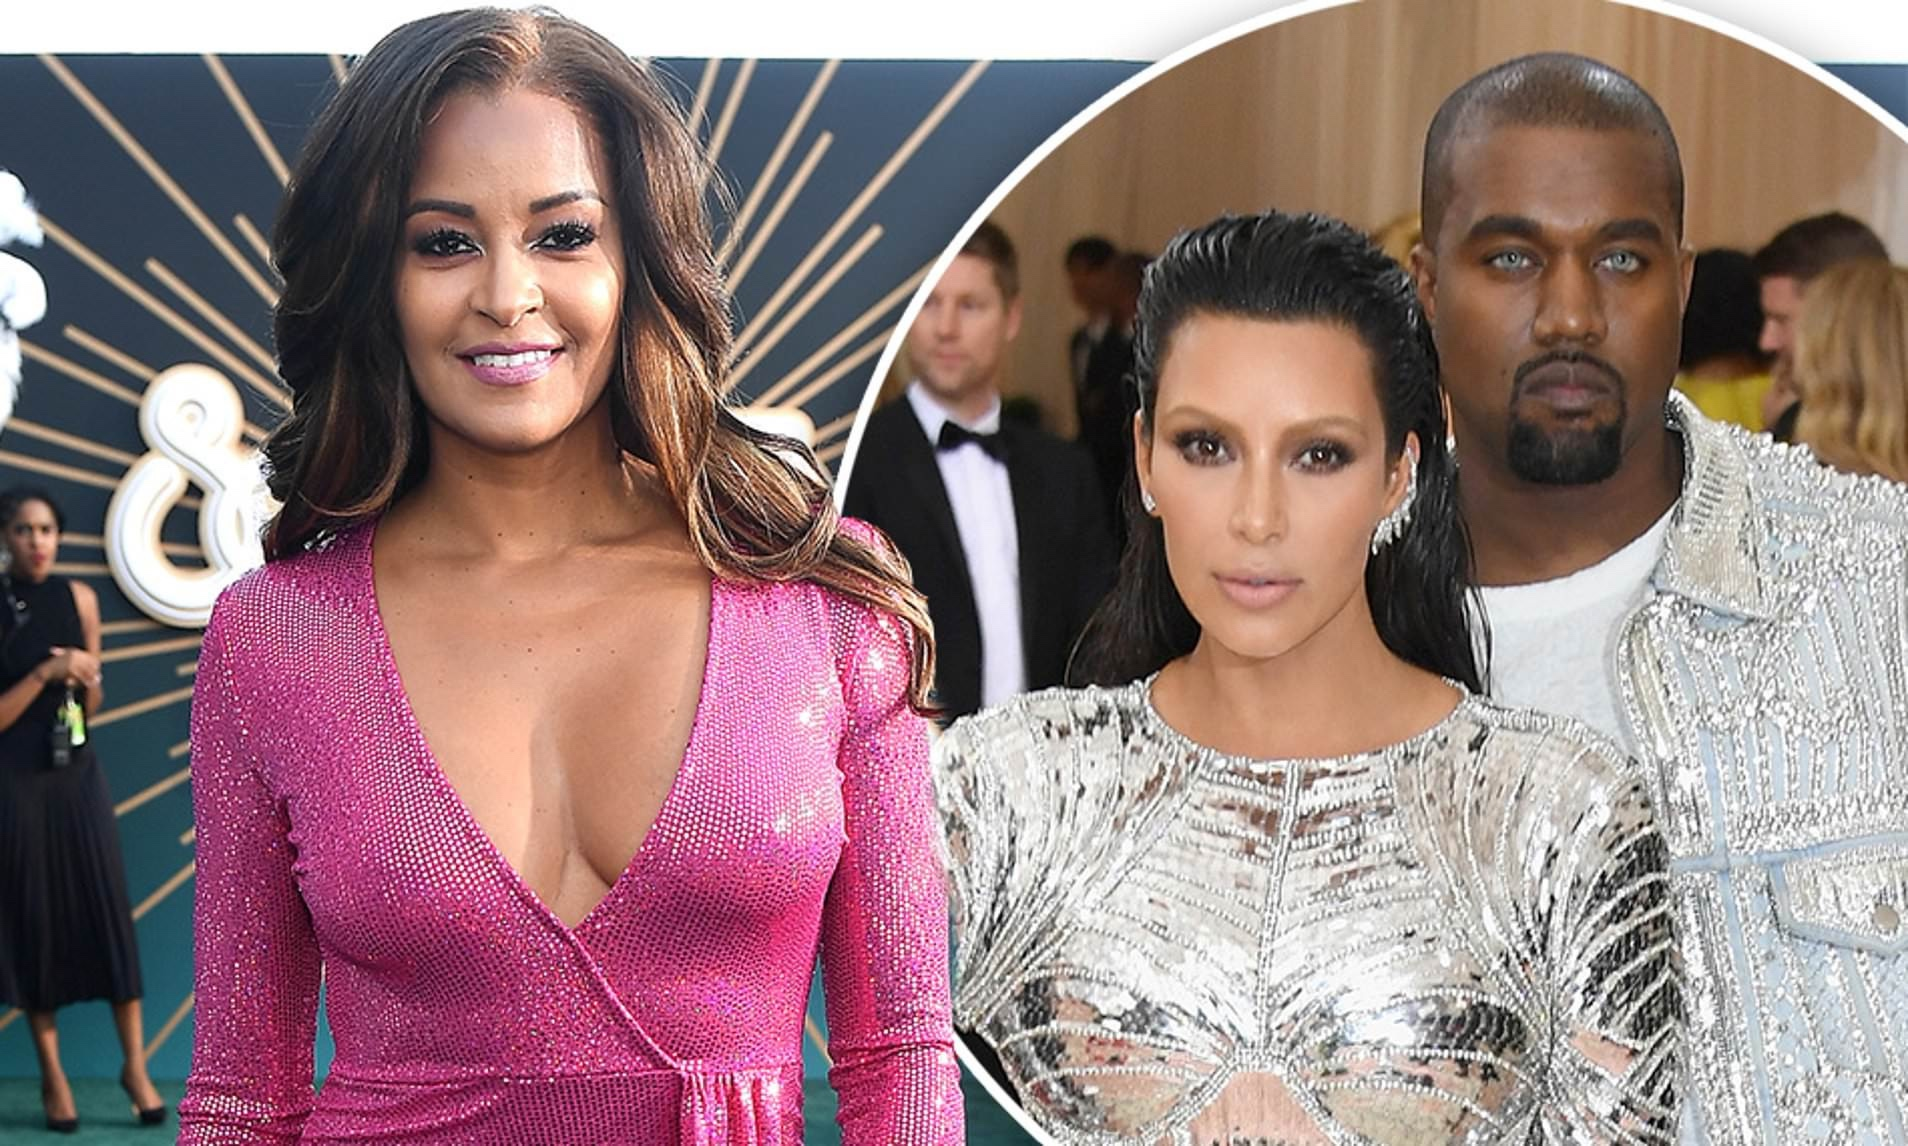 Kanye West tried to date her while still romantically involved with ex Kim Kardashian ; Real Housewives of Atlanta star, Claudia Jordan claims